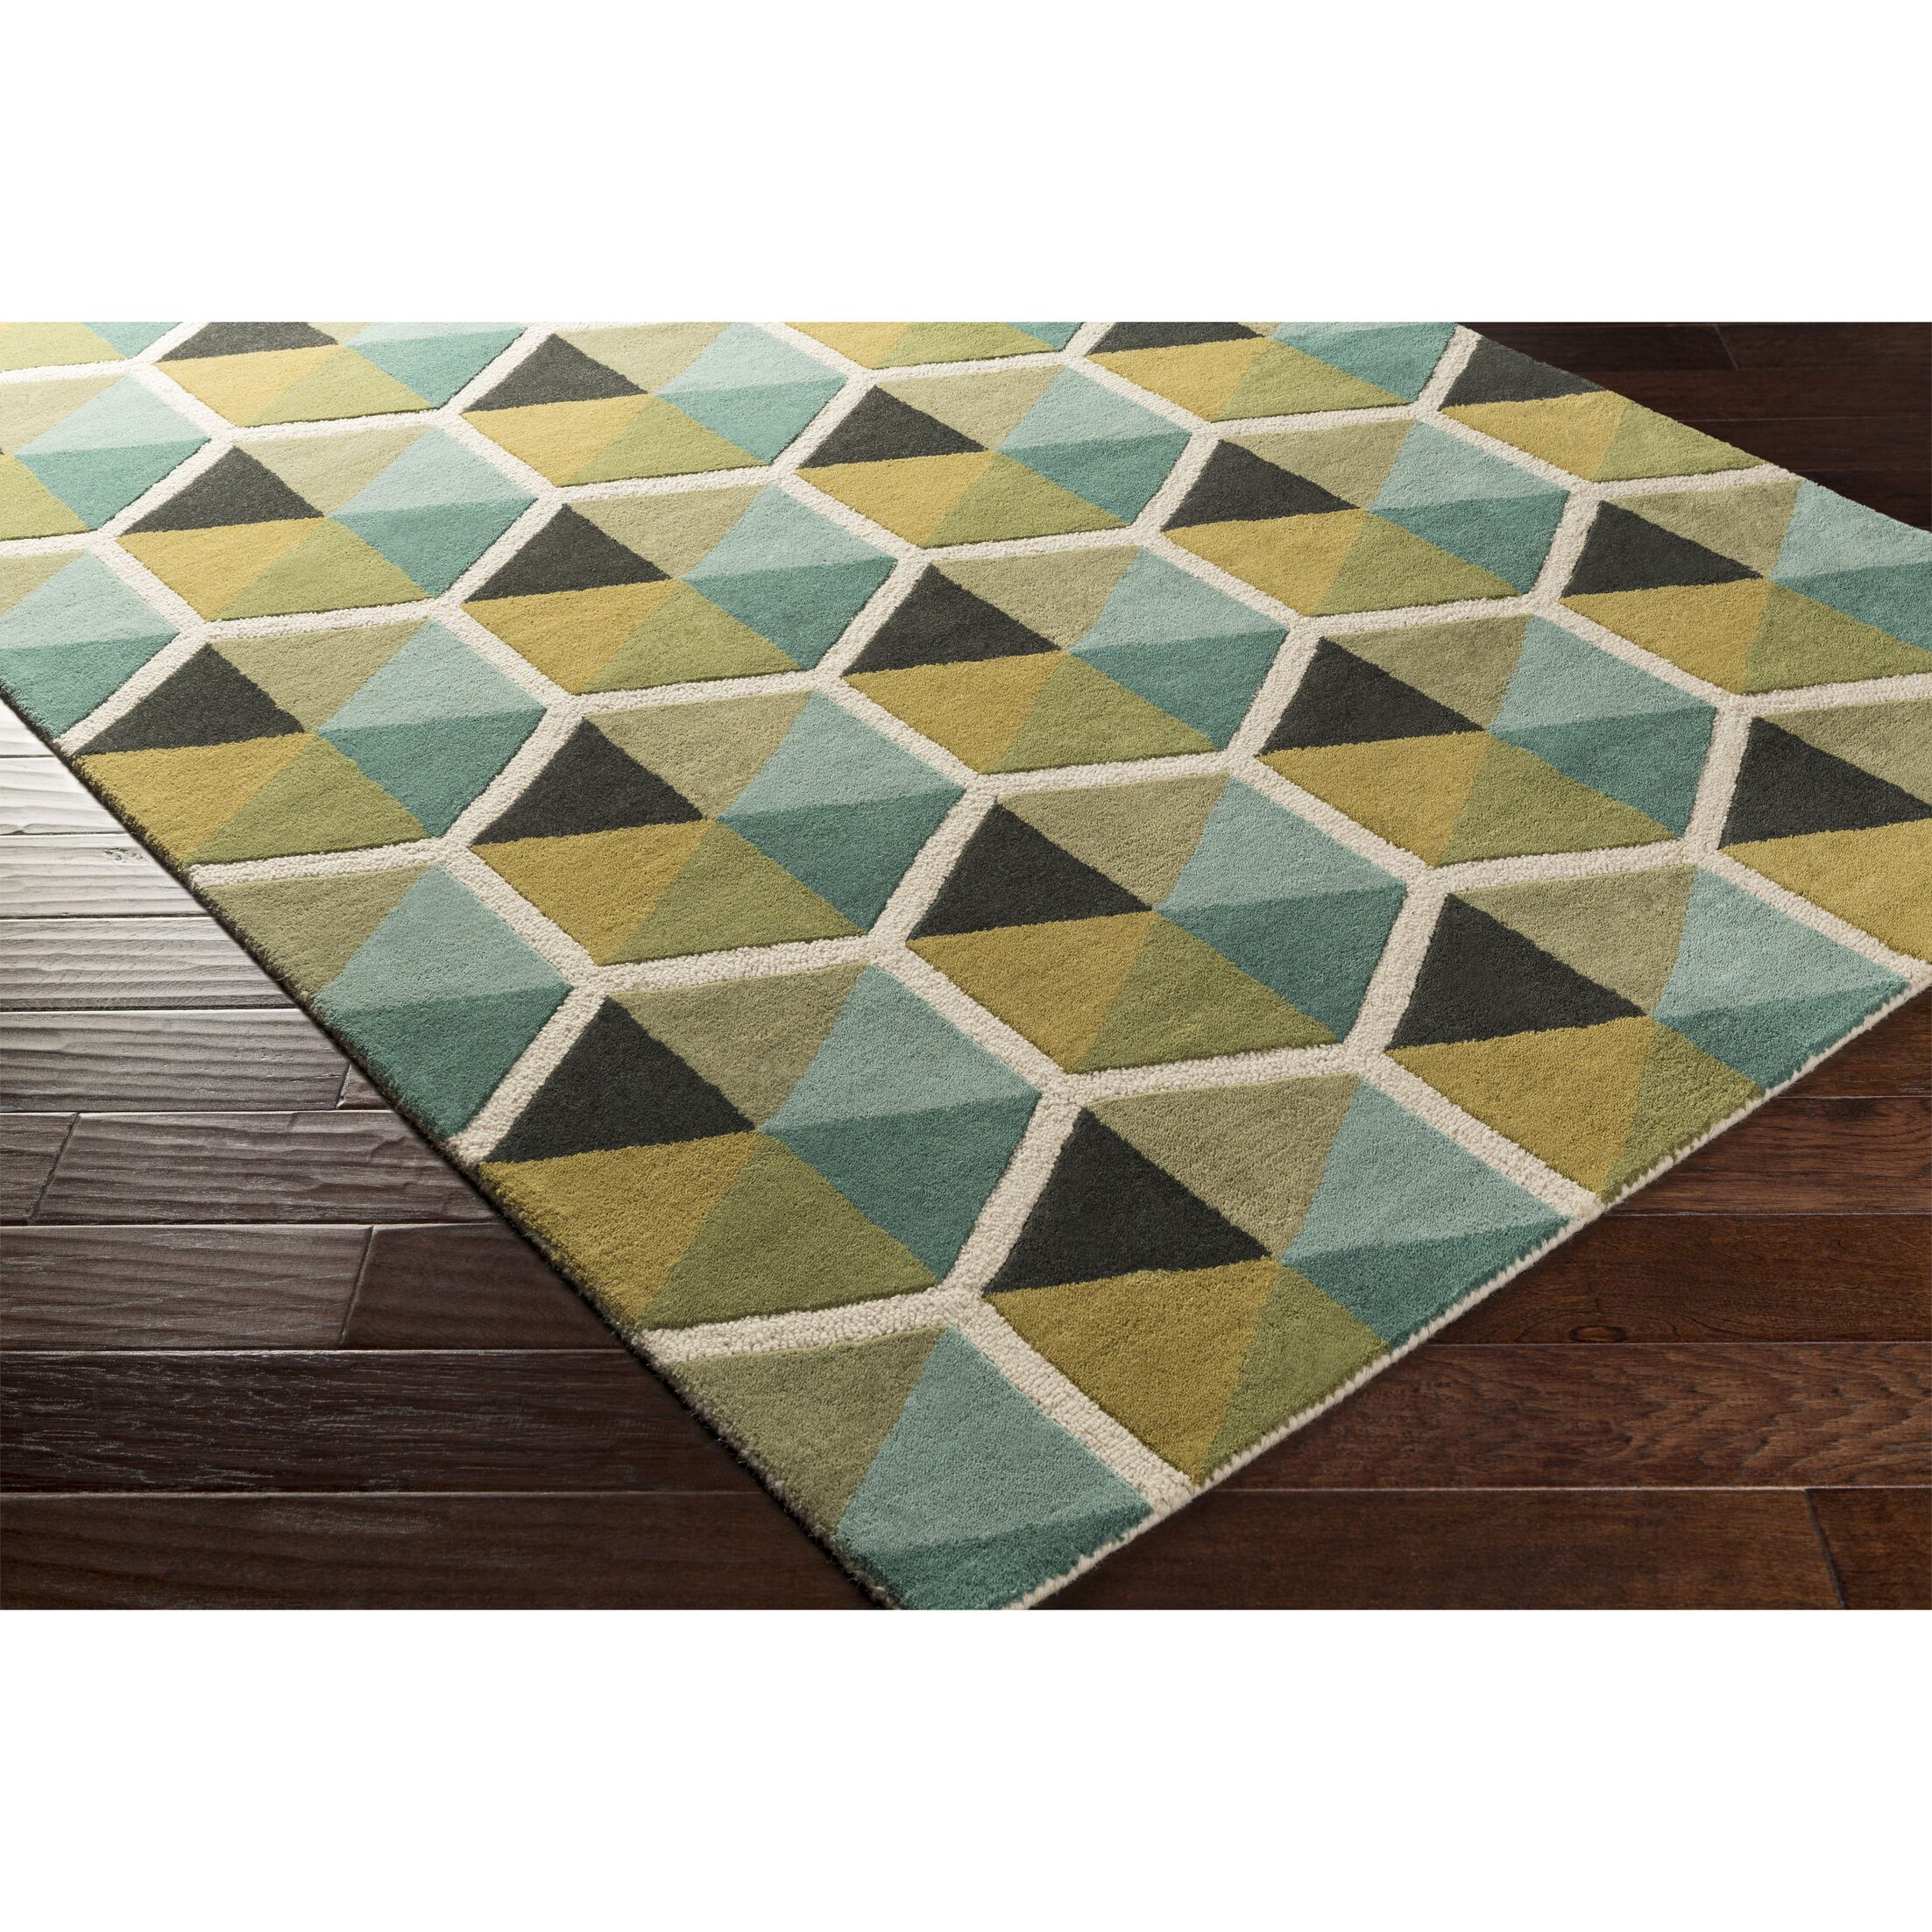 Nida Hand-Tufted Blue Area Rug Rug Size: Rectangle 8' x 10'